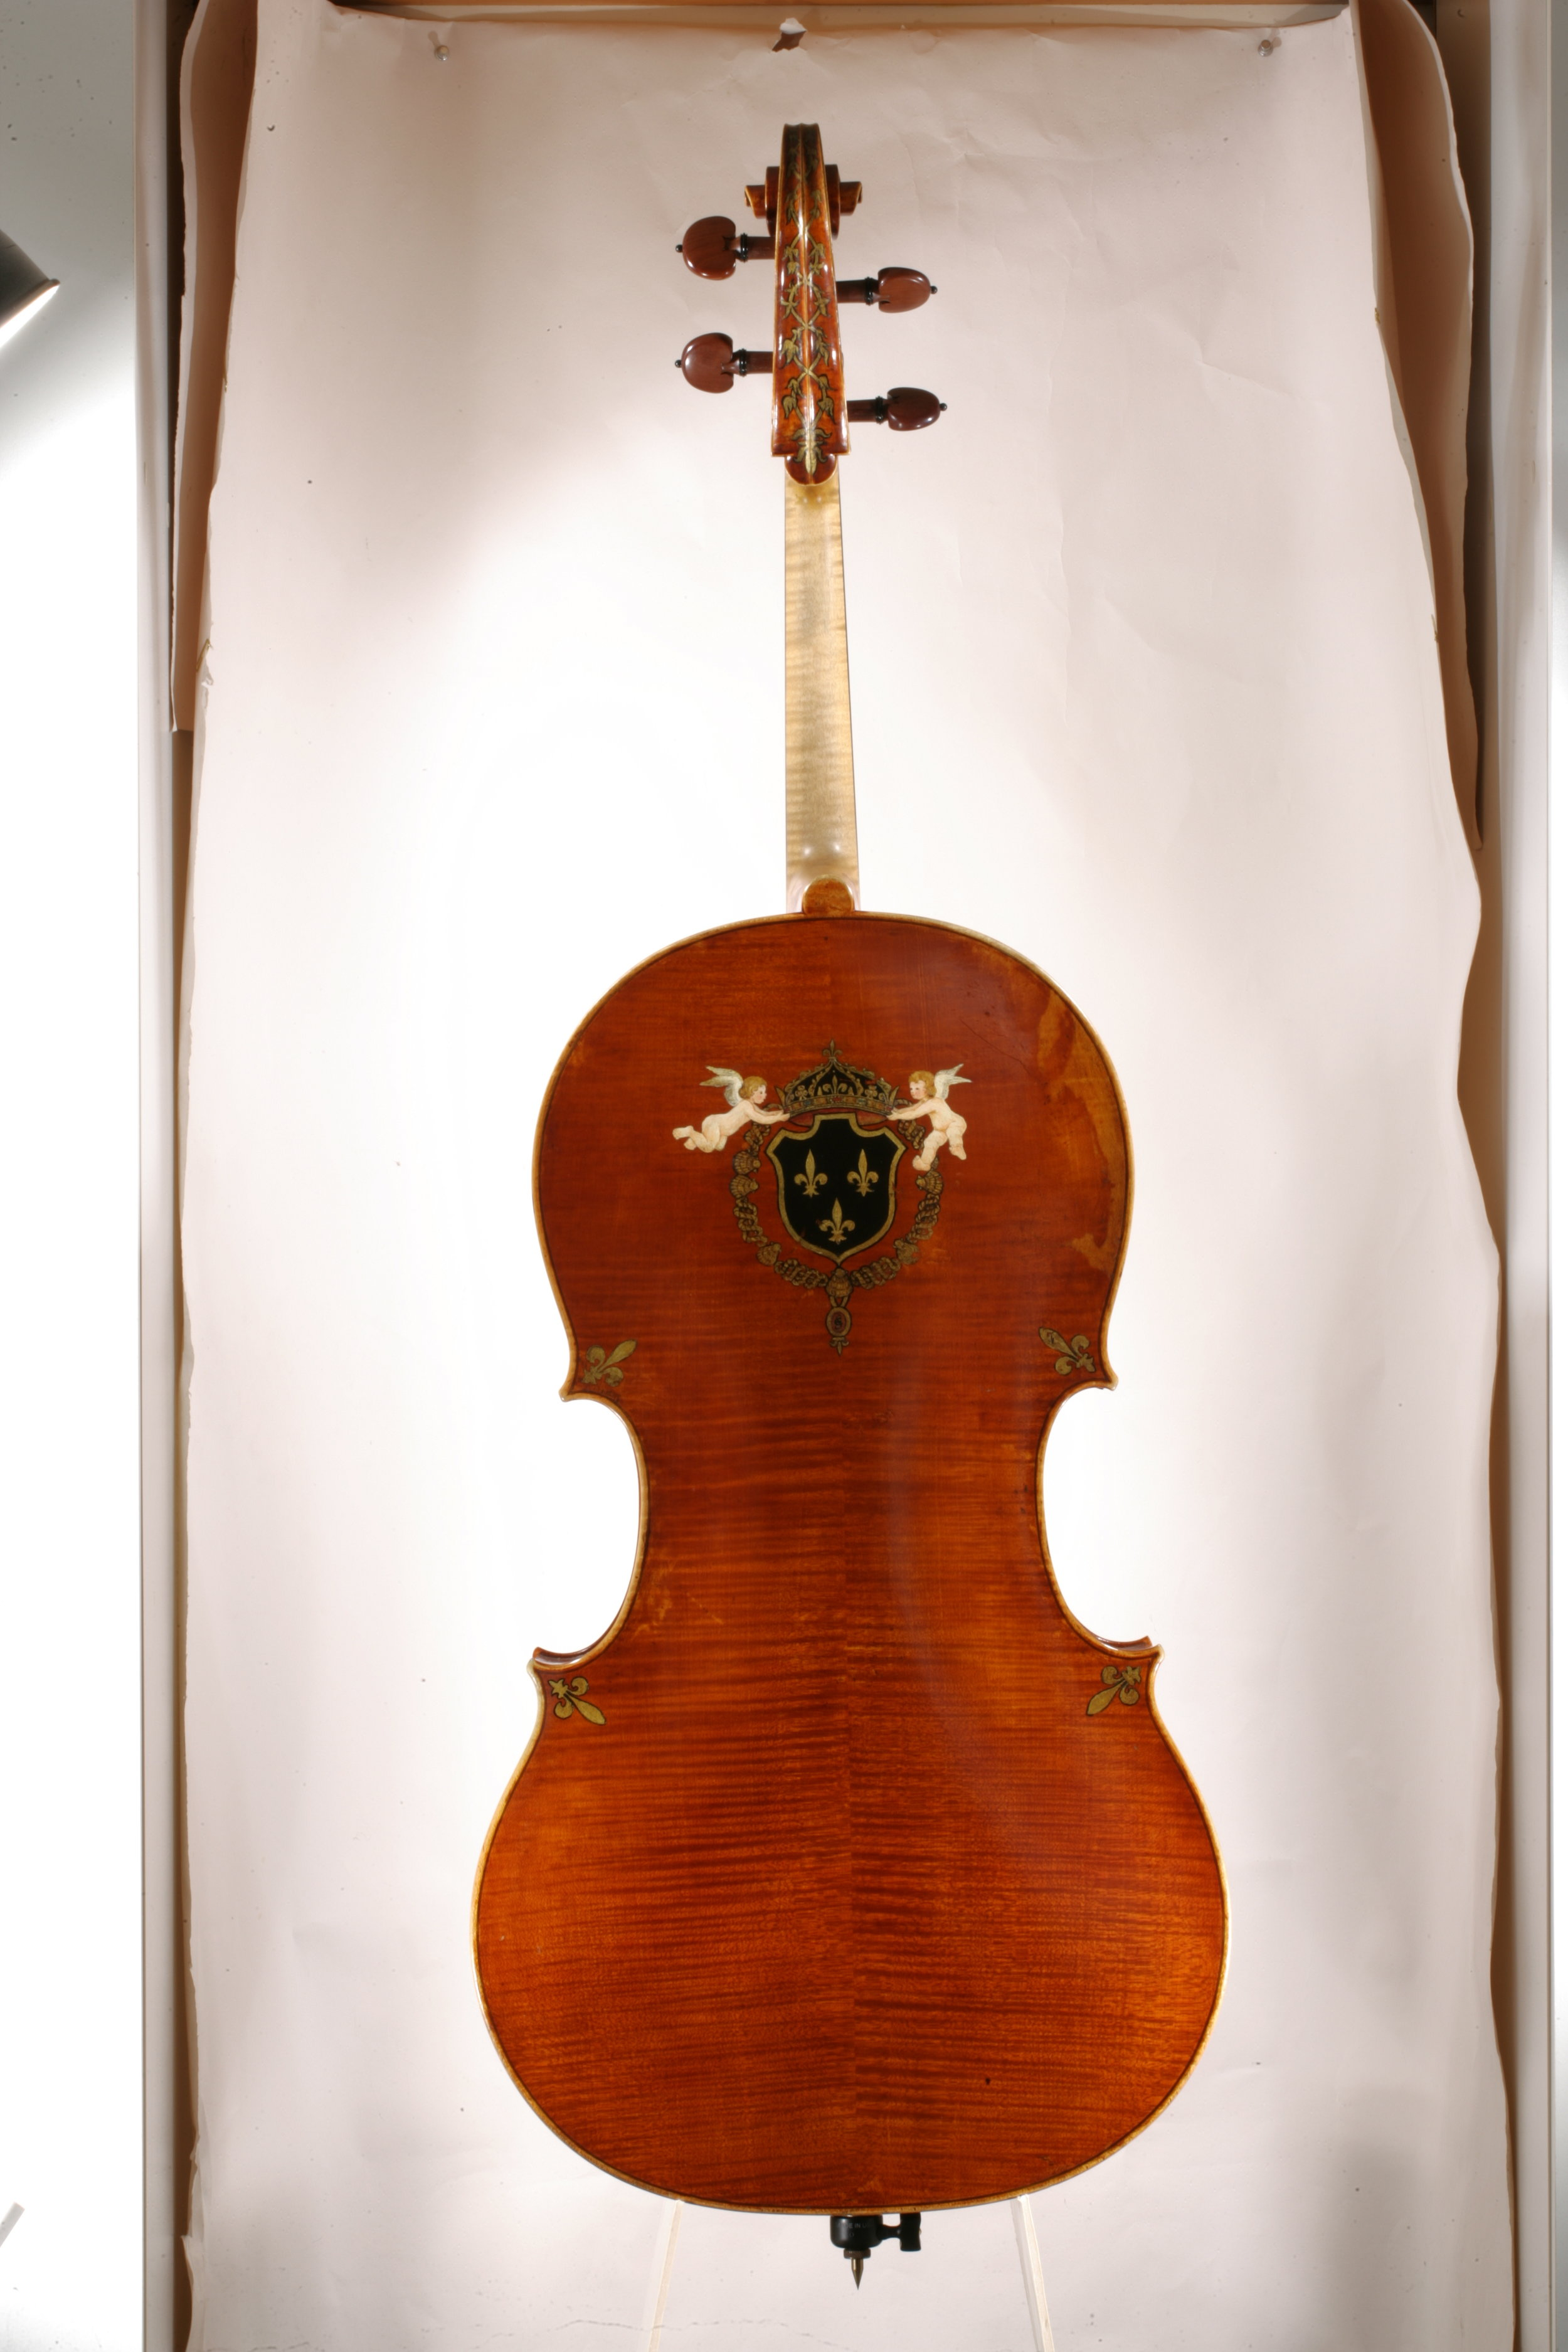 Back of the Grubaugh & Seifert cello from 1989.